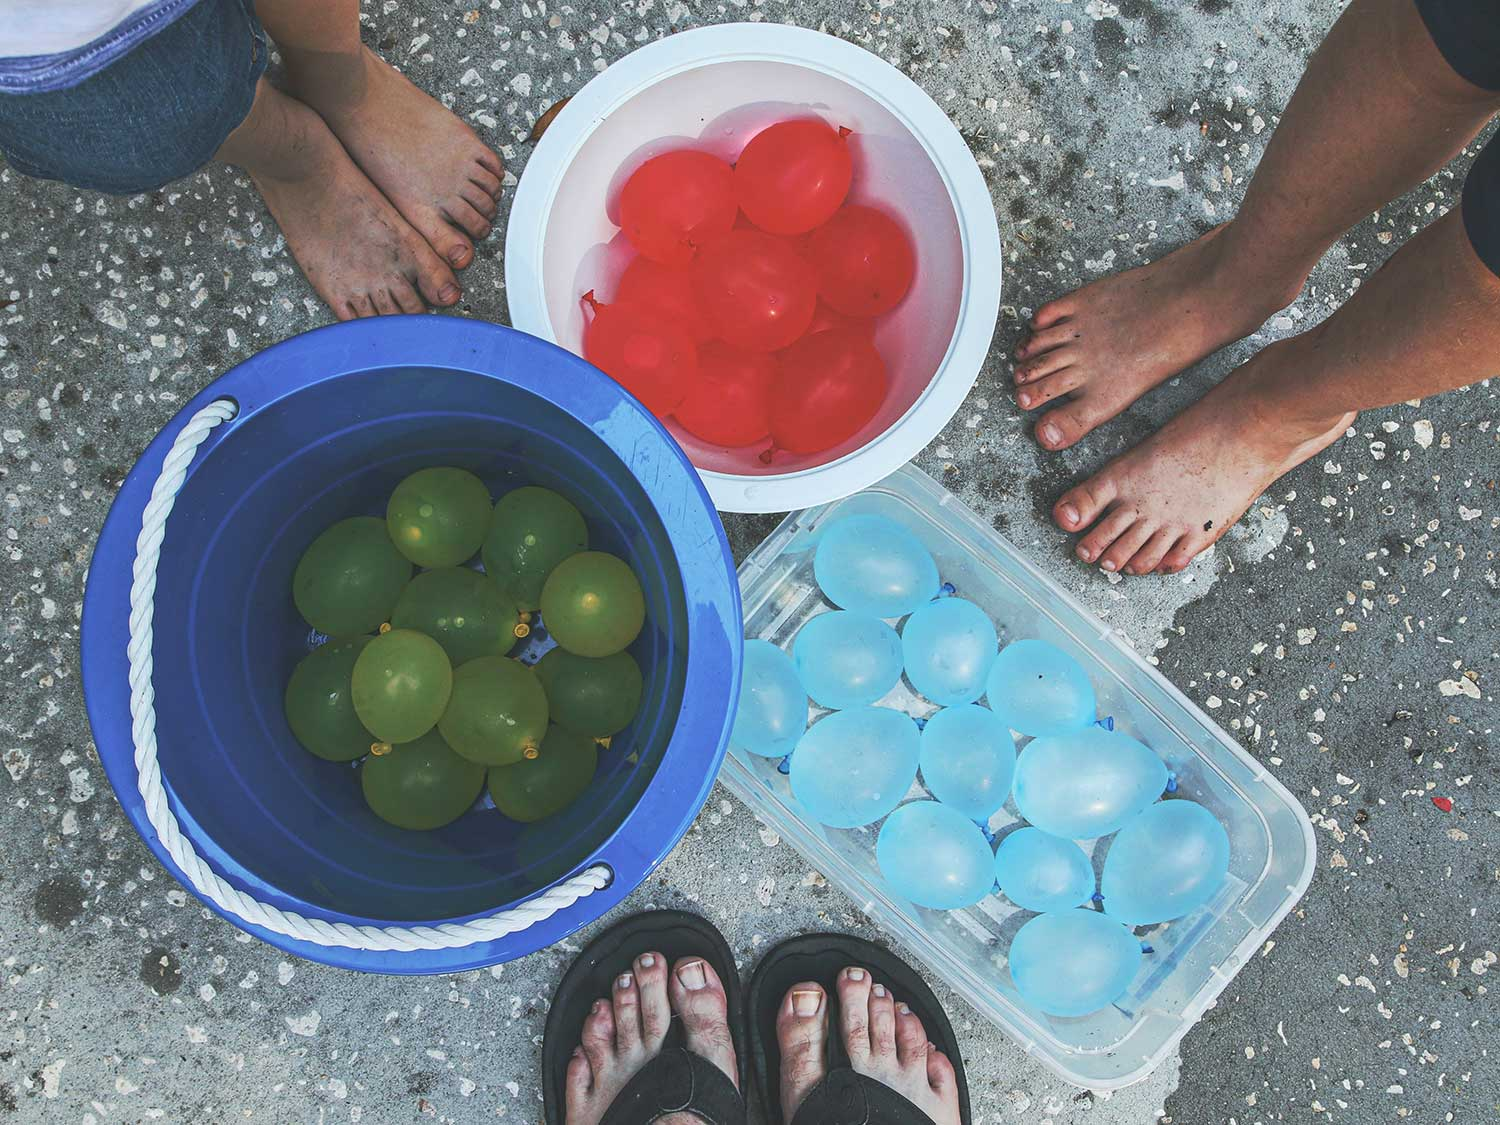 Standing over buckets of water balloons.